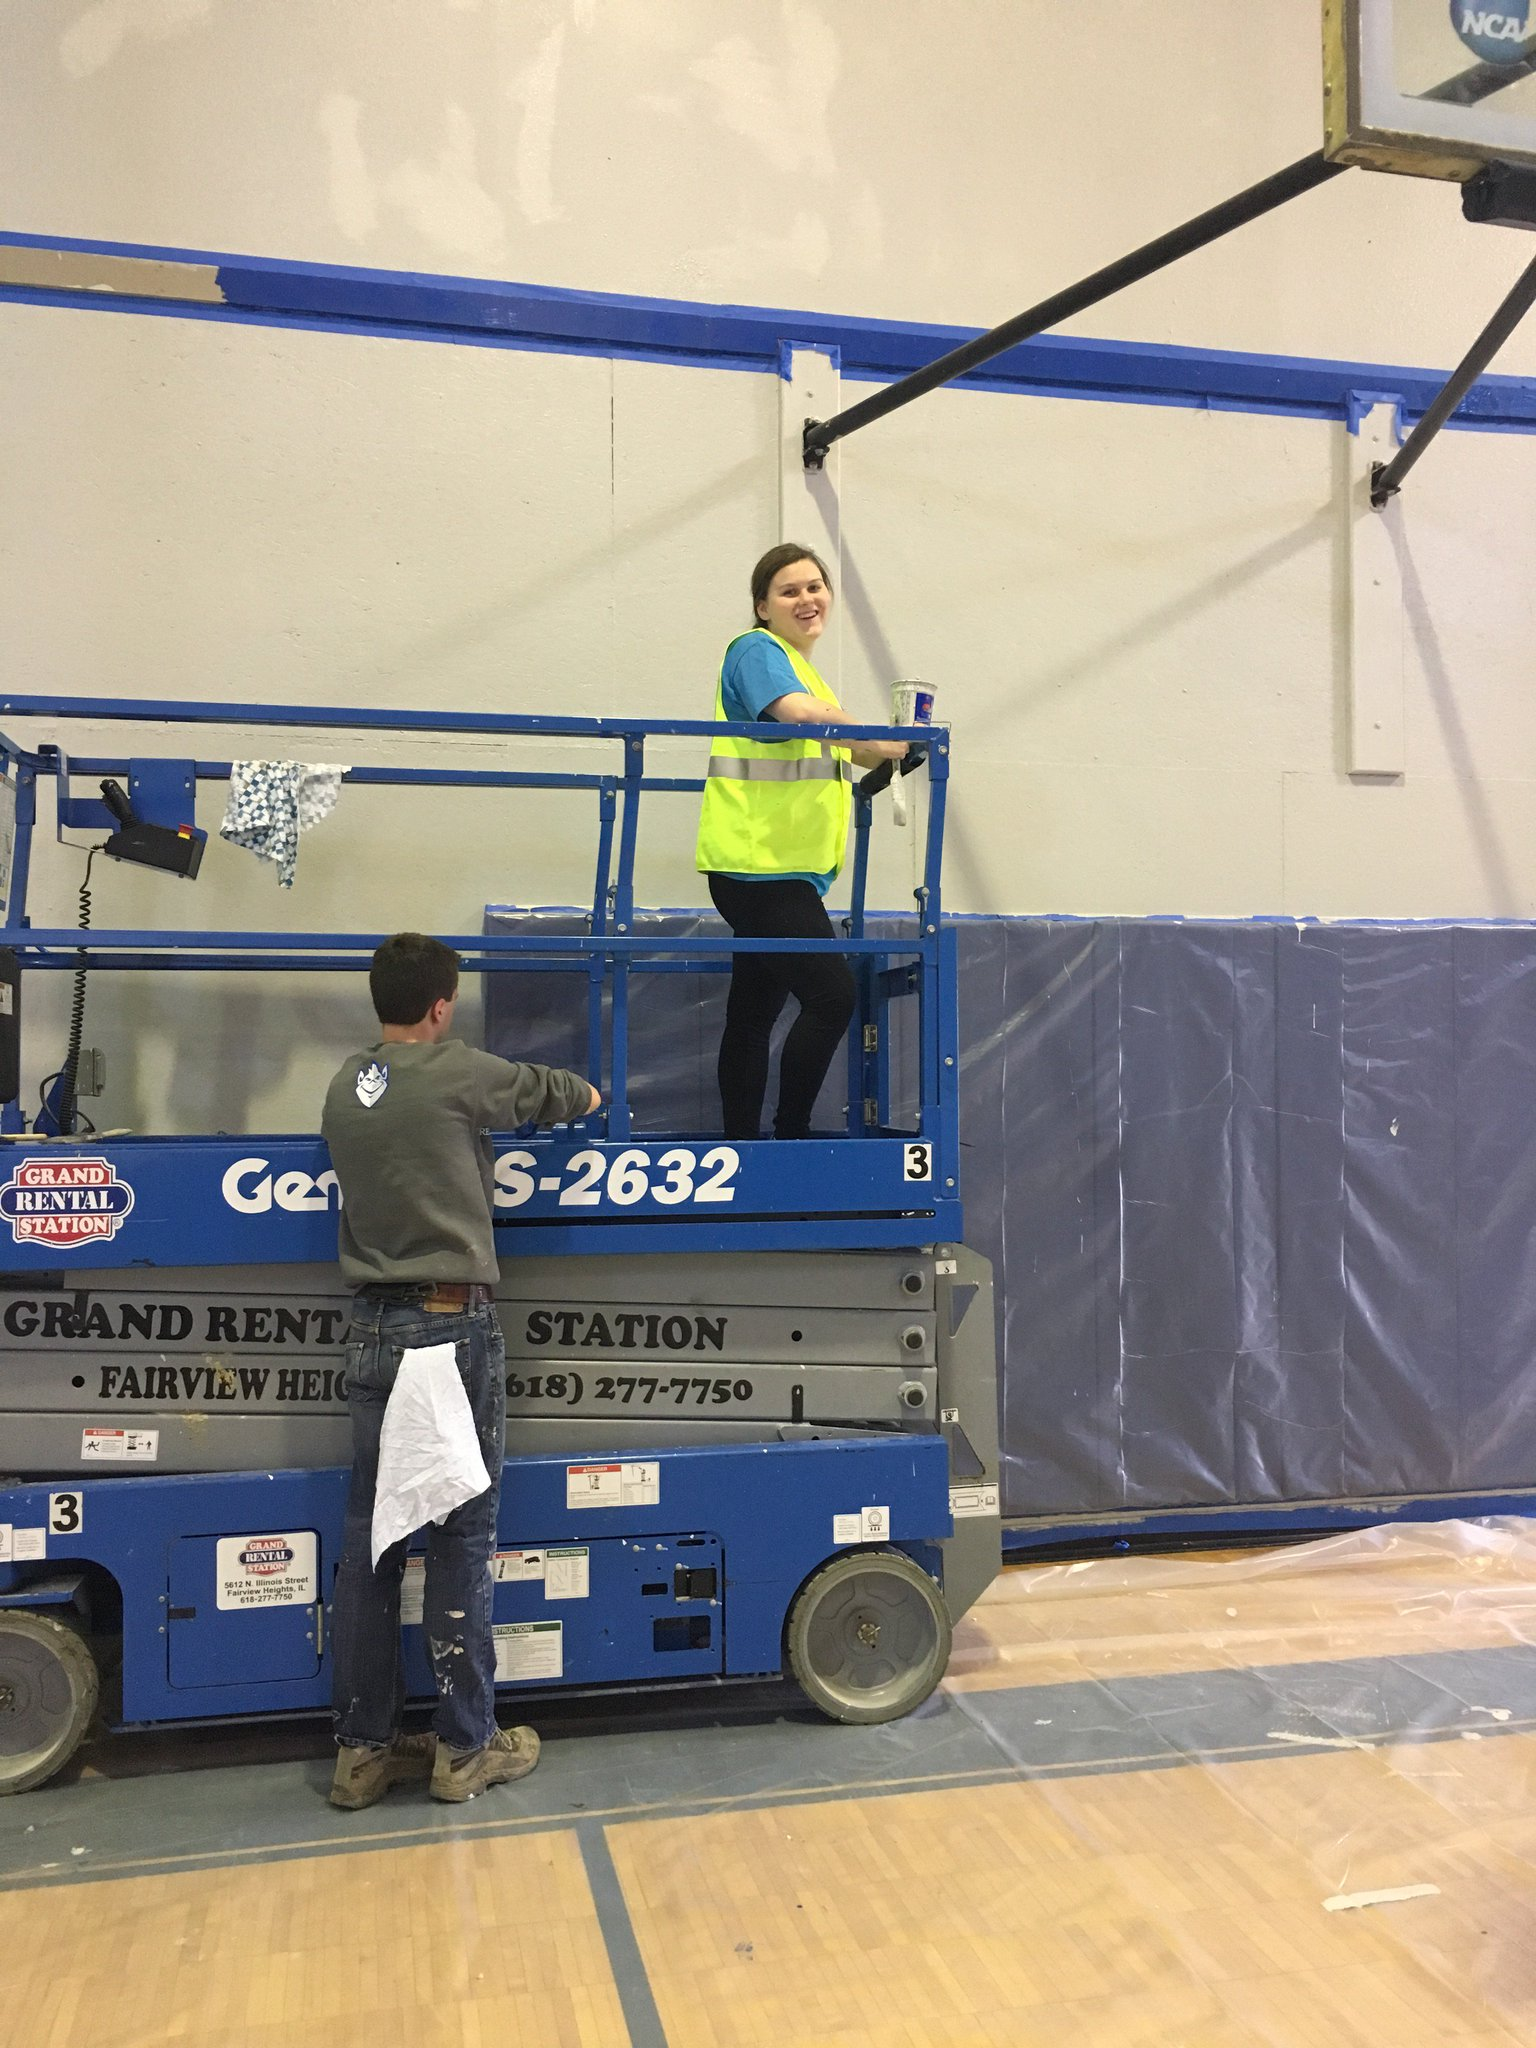 Starting to finish up in the gym at the CAC! #ServiceDay https://t.co/hGlJD2egS7